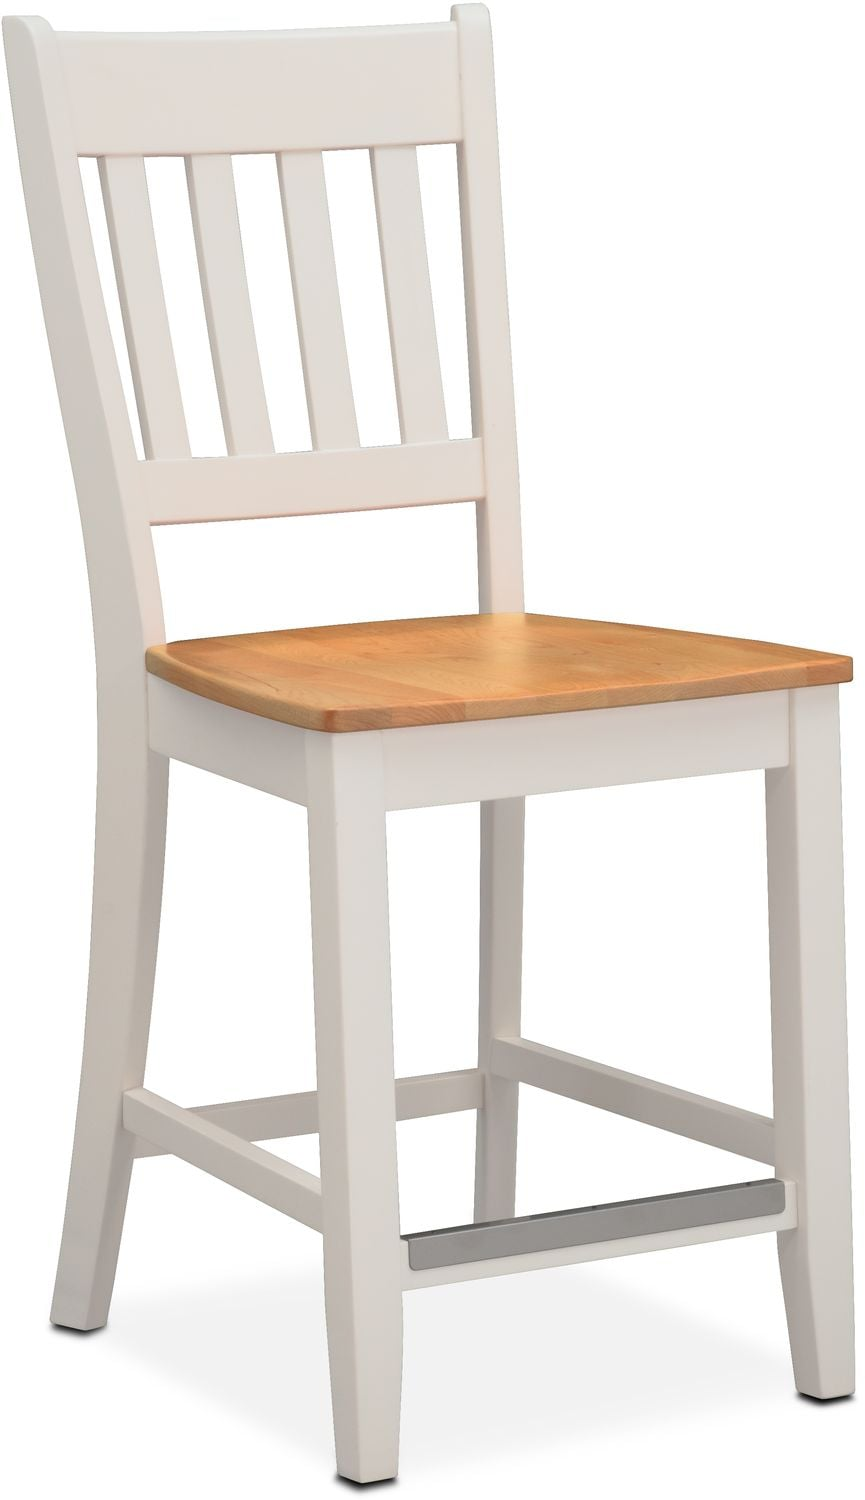 Dining Room Furniture - Nantucket Counter-Height Slat-Back Chair - Maple and White